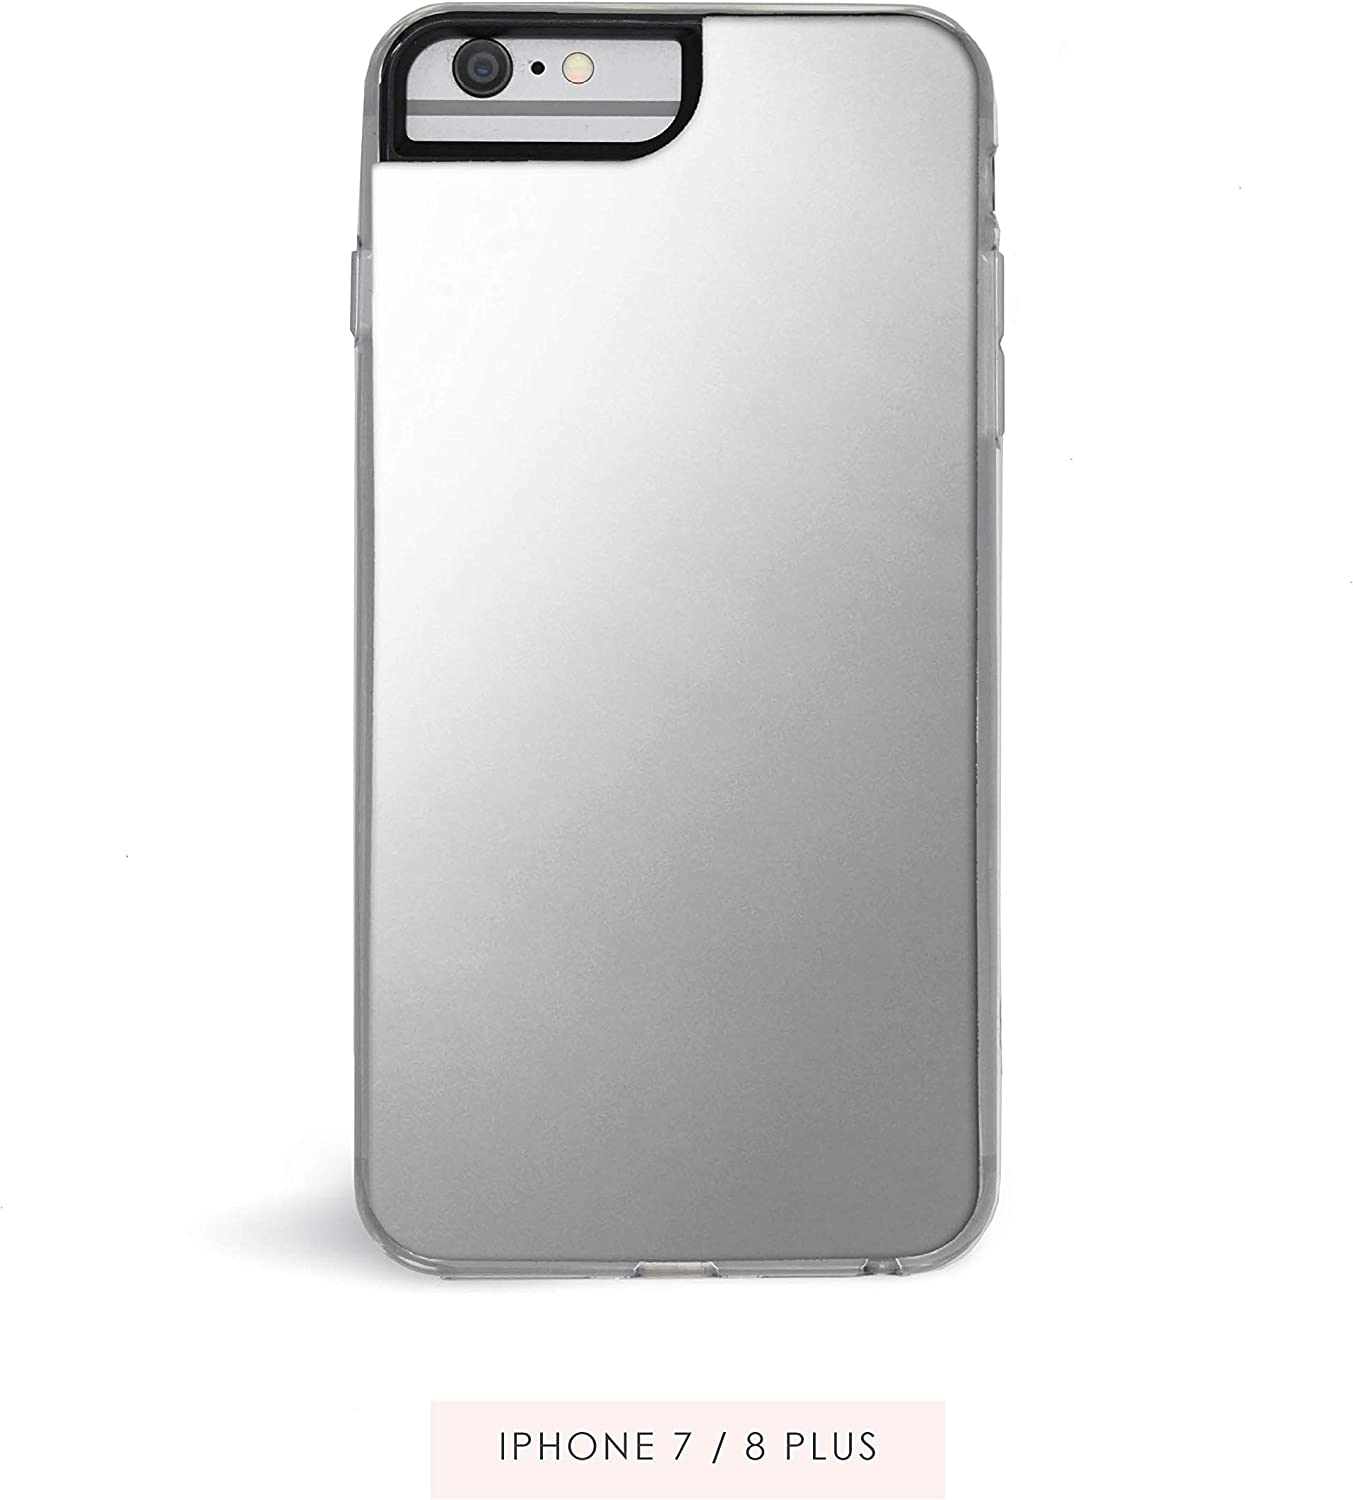 Zero Gravity Compatible with iPhone 7 Plus/8 Plus Silver Mirror Phone Case - Mirror Plated Design - 360° Protection, Drop Test Approved